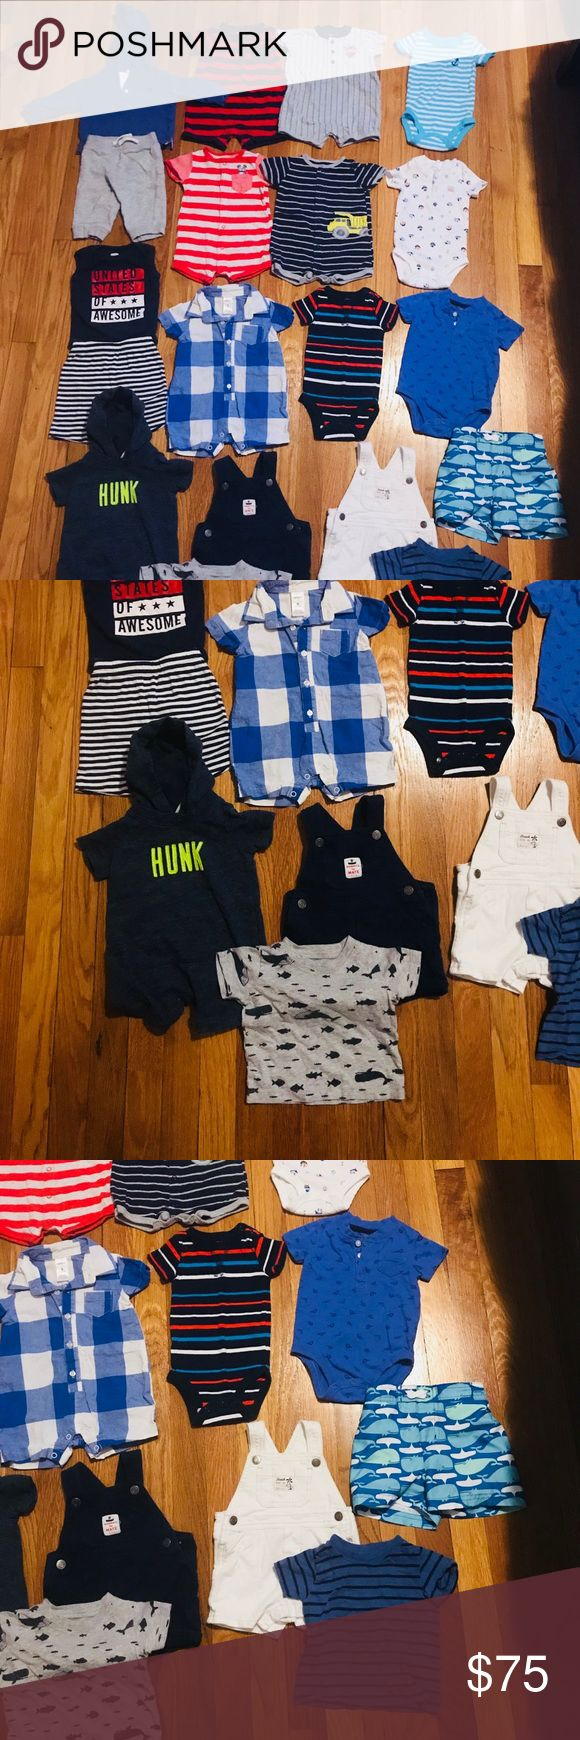 Baby boys 6 month lot! 19 pieces! Mostly carters  Hooded sweatshirt with matching sweat pants  4 button down rompers  4 onsies  2 short overalls with matching t shirts  1 hooded romper  Old navy Fourth of July Tank top onsie with matching shorts (6-12 month) Swim trunks (6-9 month) 1 plaid dress romper Carter's One Pieces #babytanktopsboy